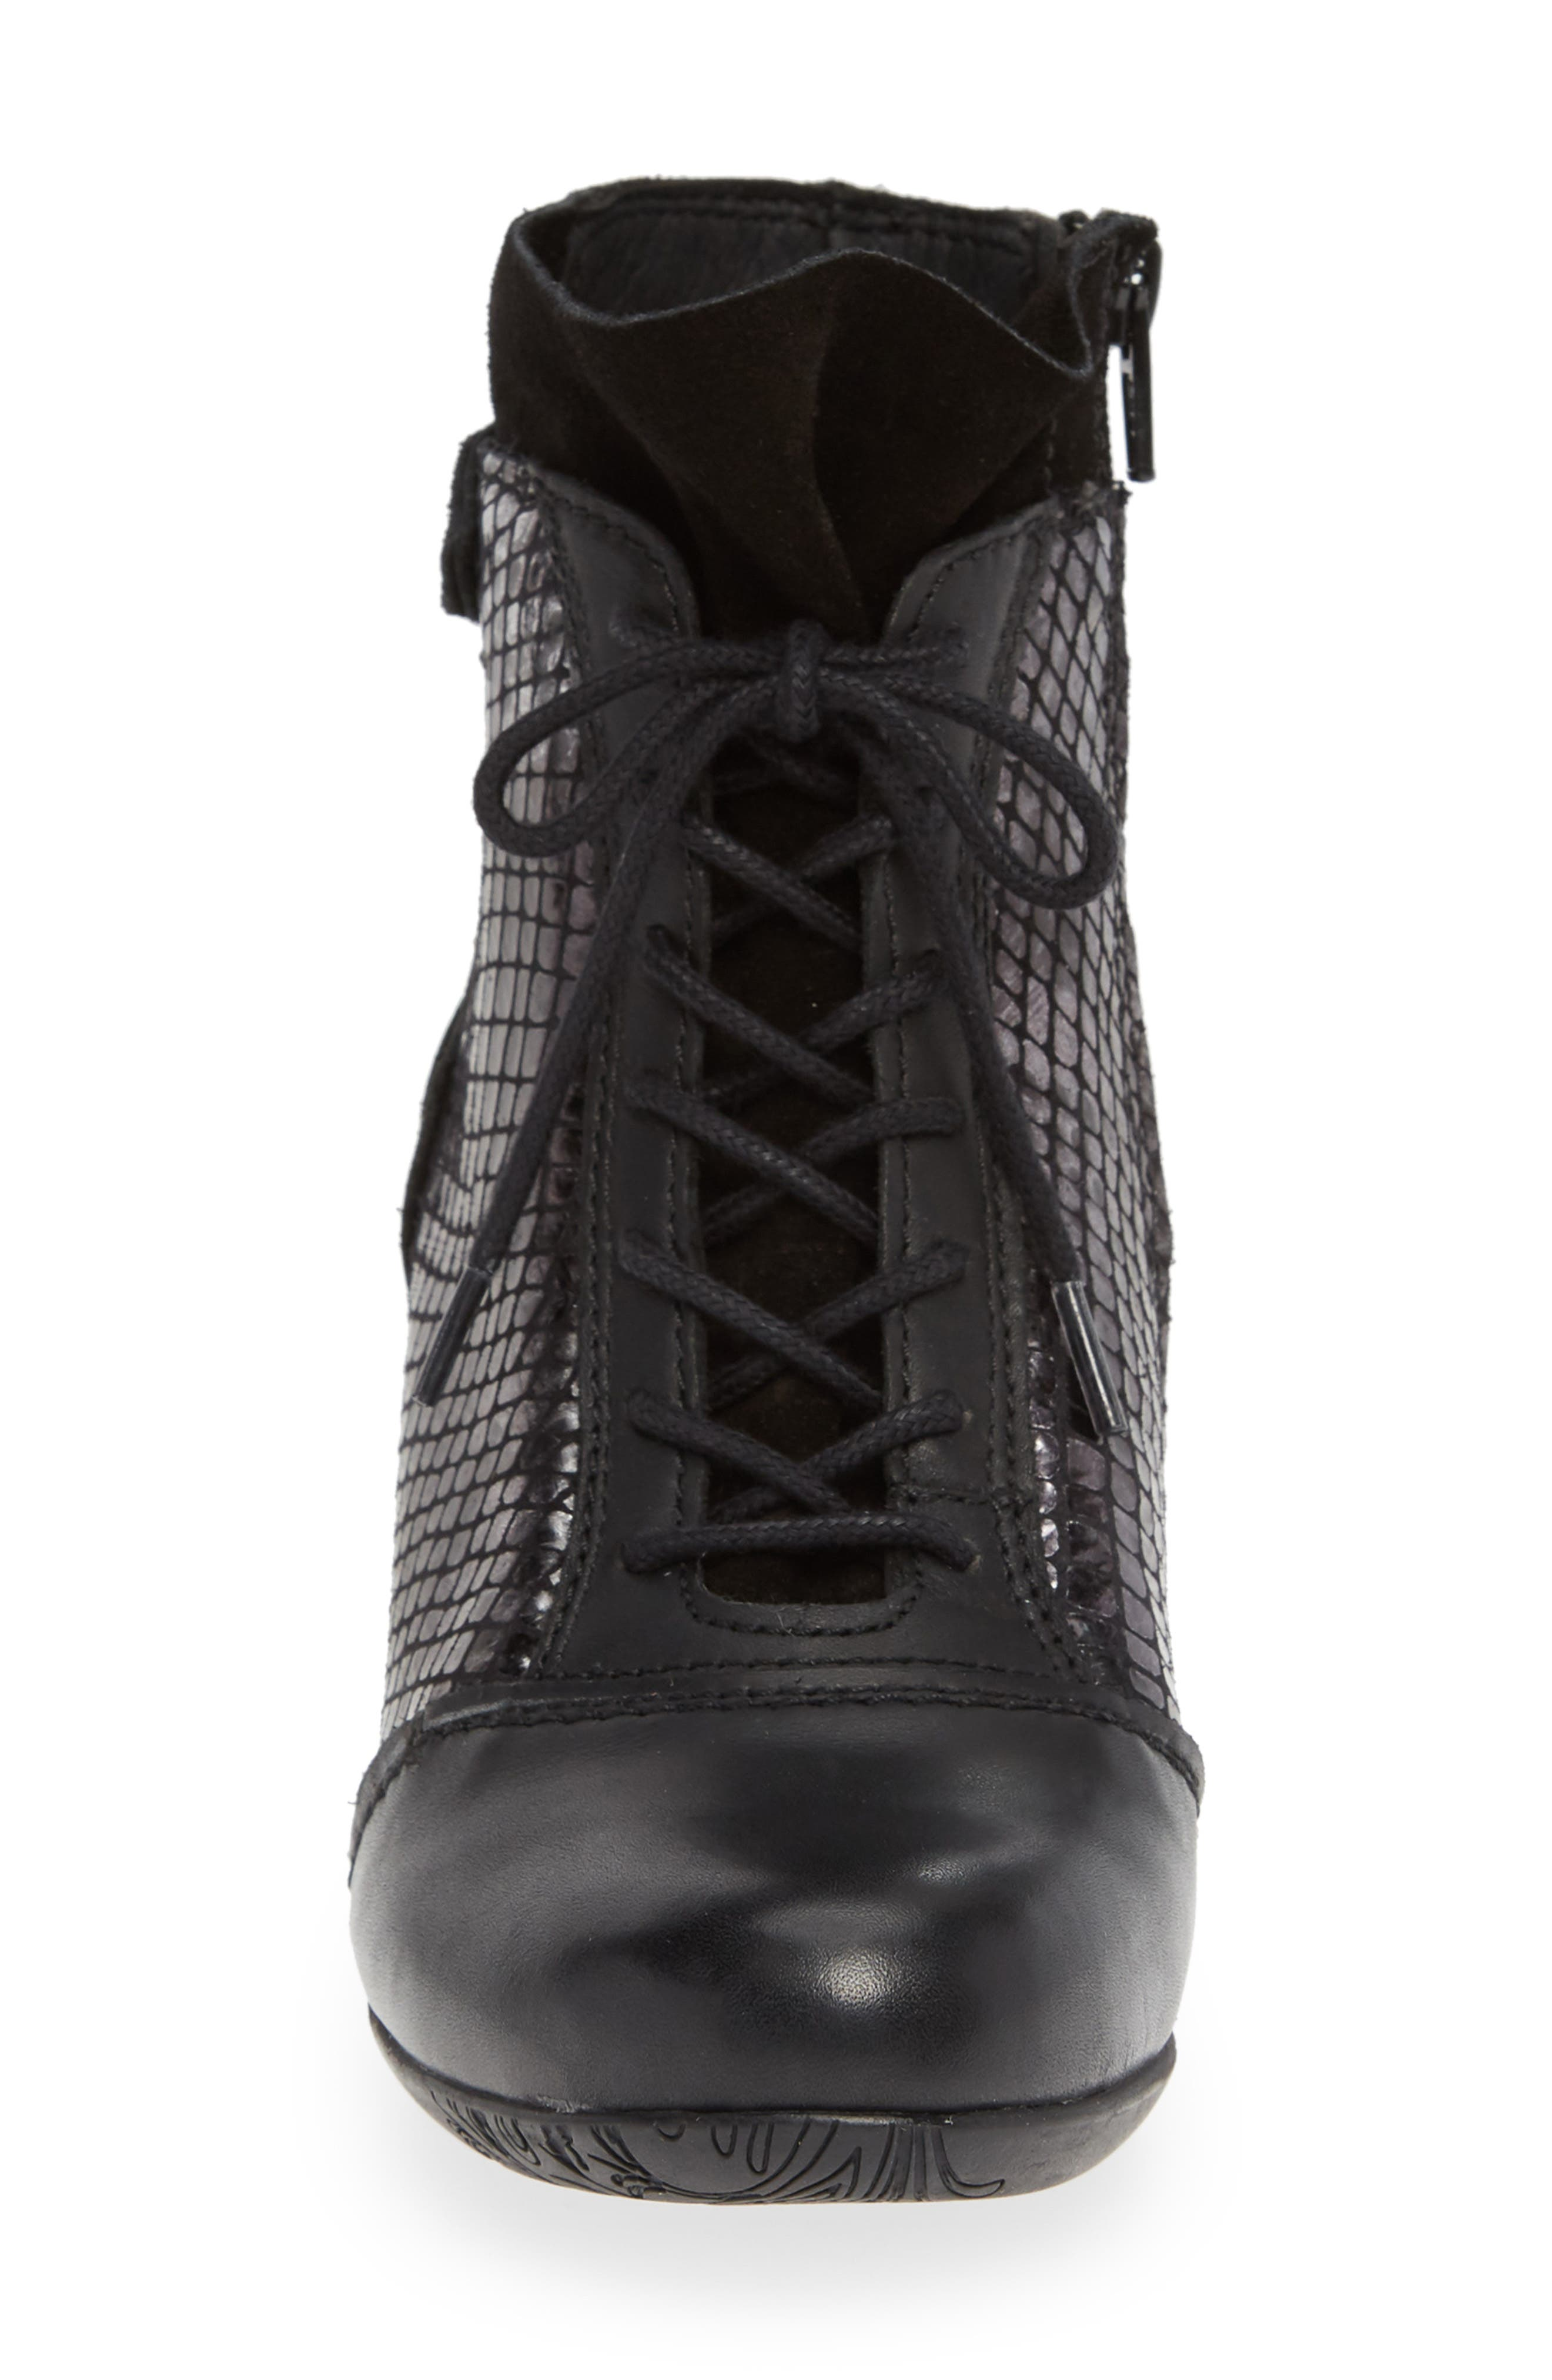 'Jesse' Lace-Up Bootie,                             Alternate thumbnail 4, color,                             BLACK TAIPAN LEATHER